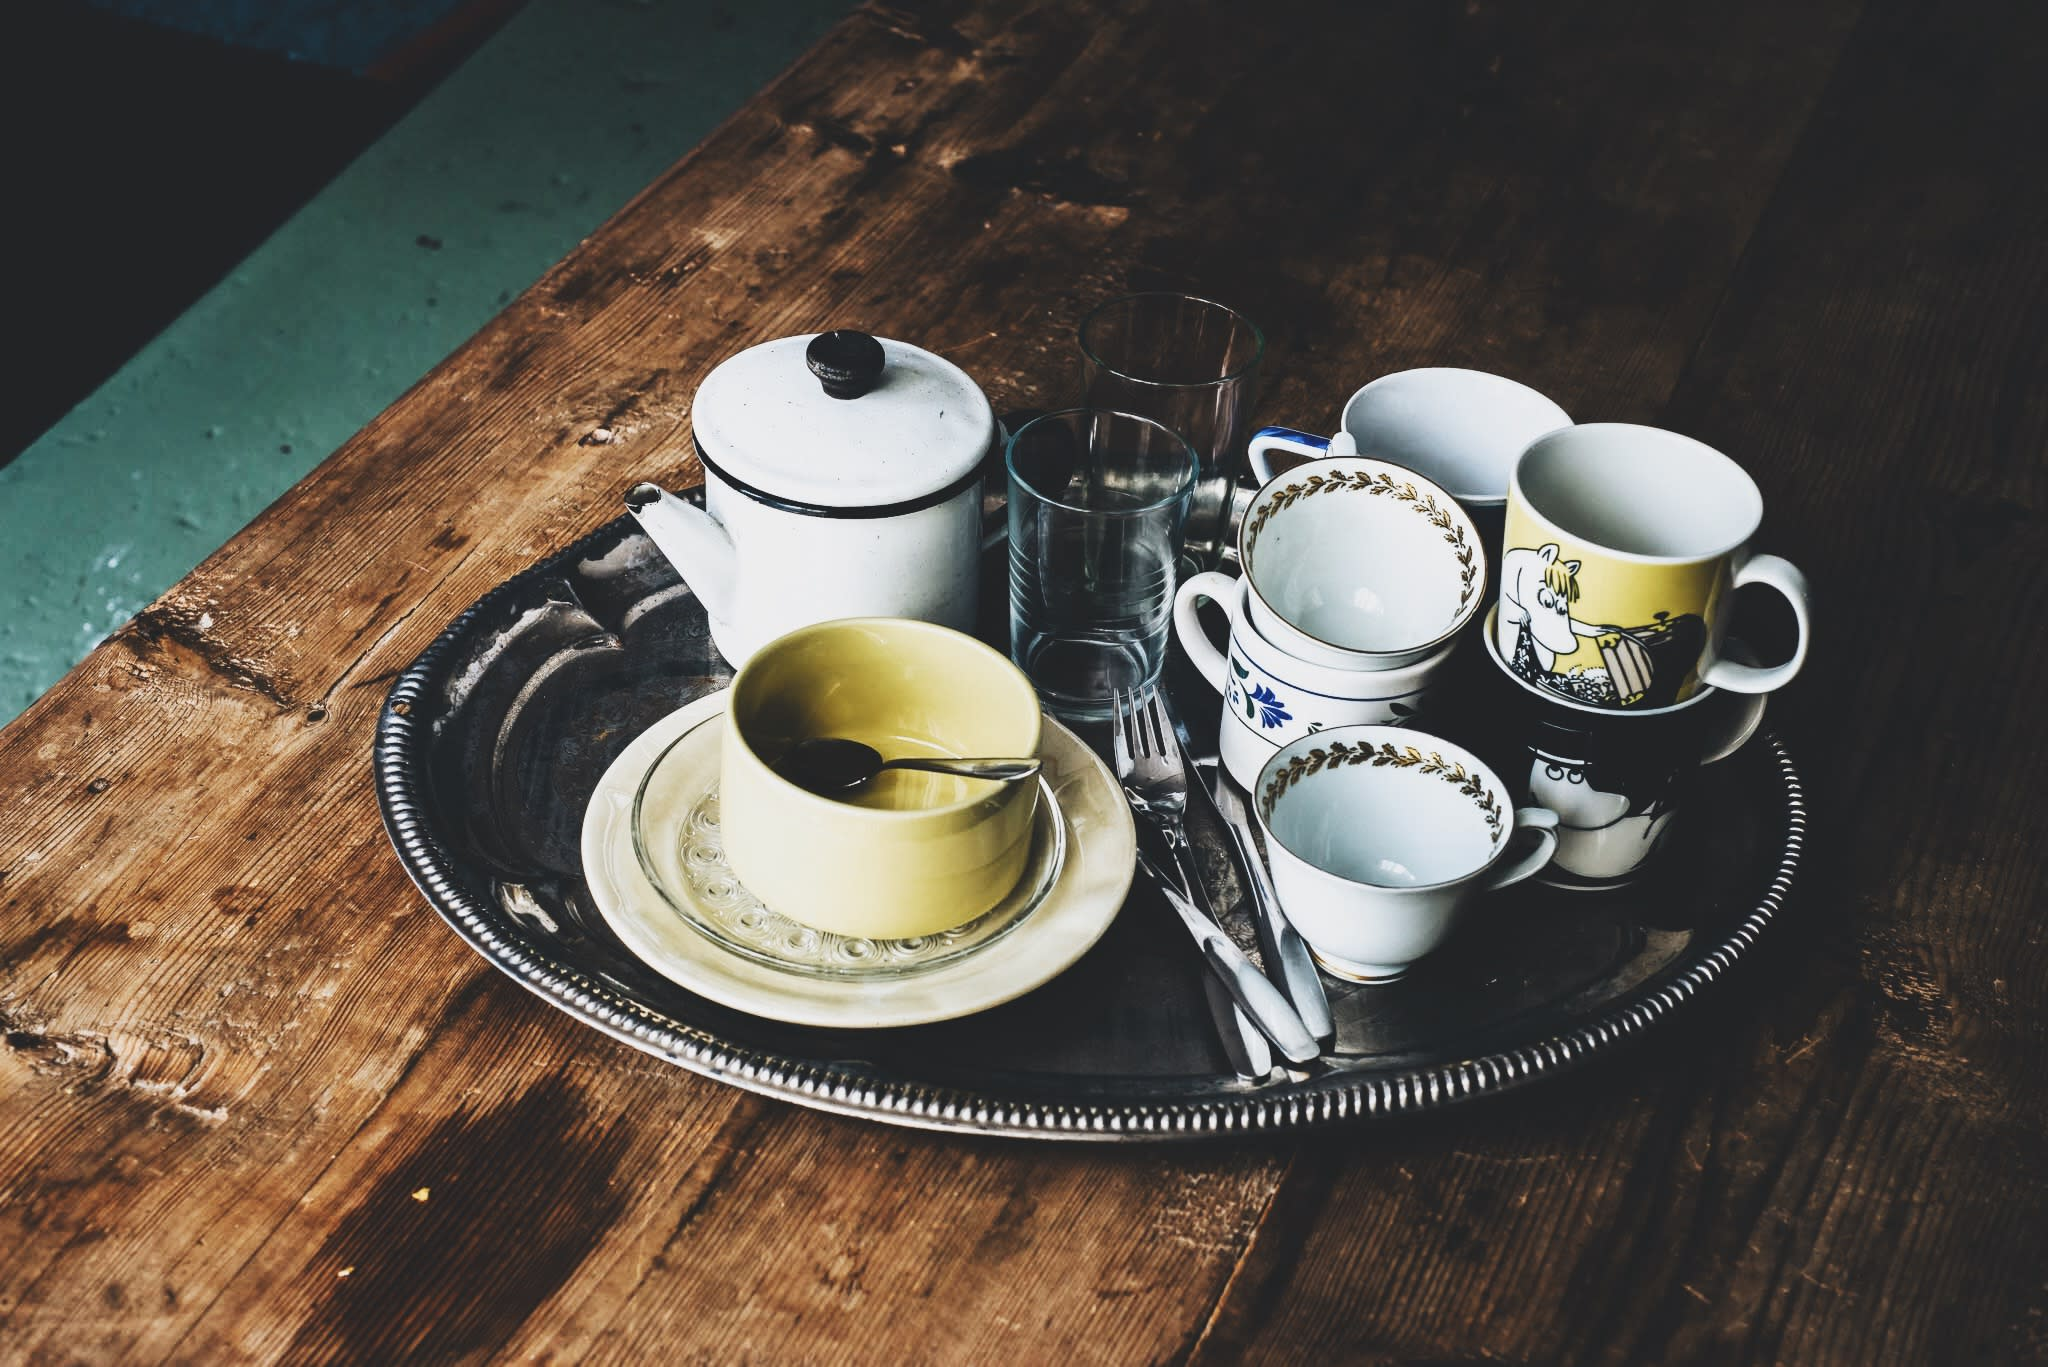 Empty coffee cups on a tray